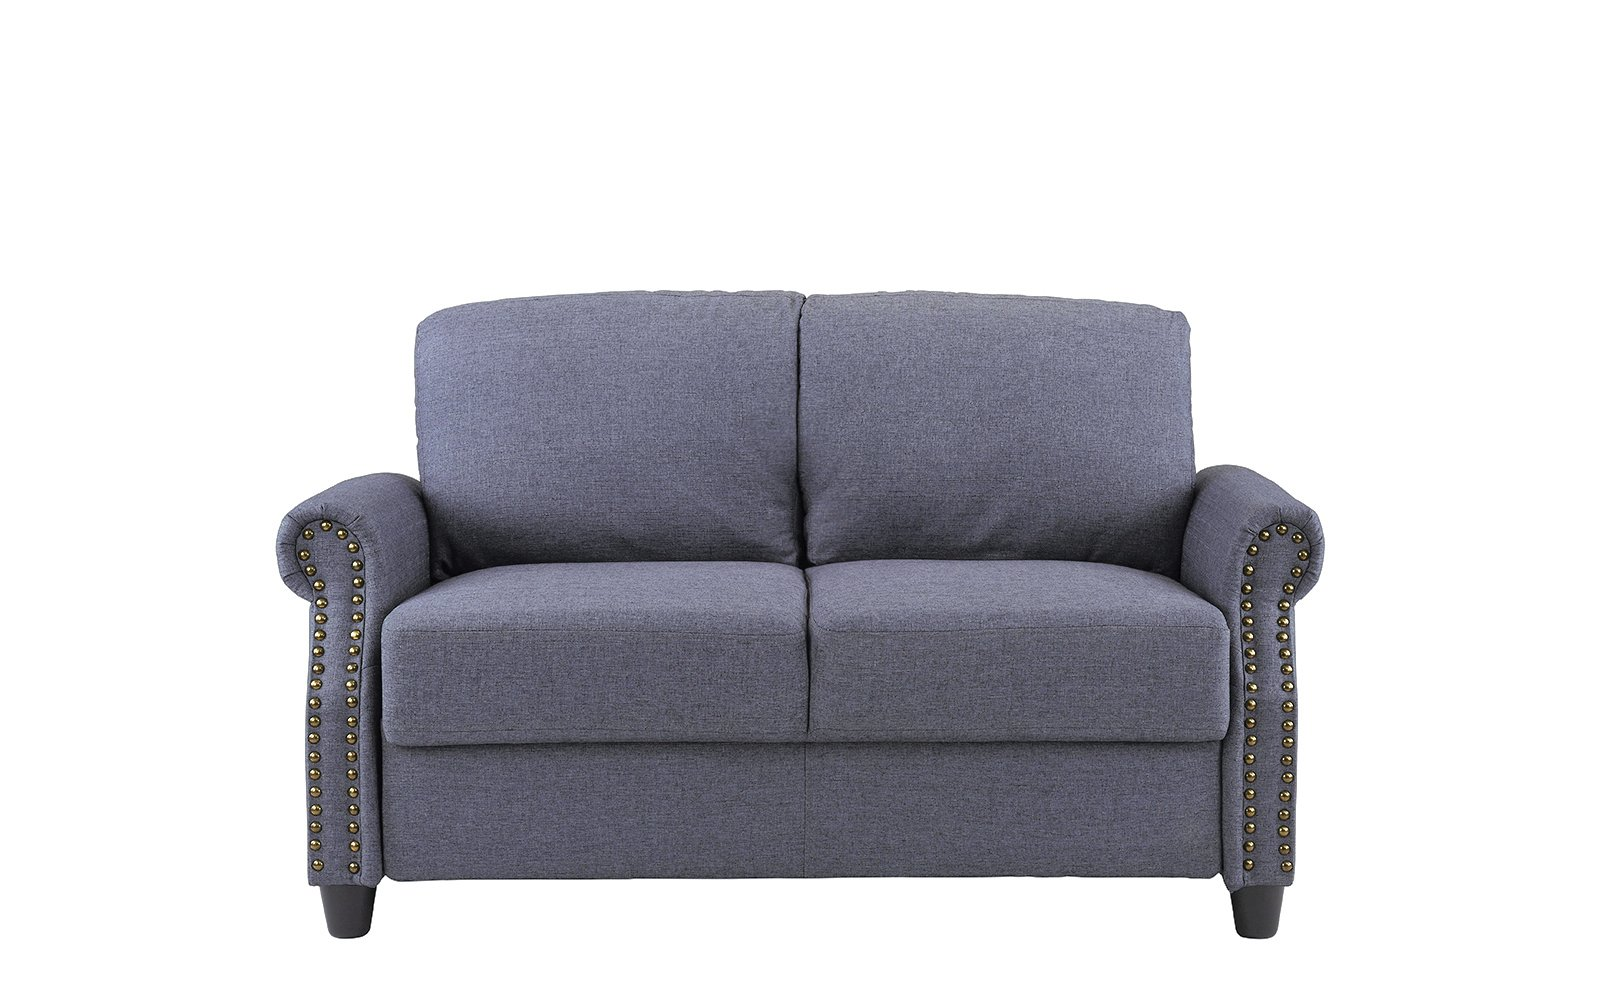 Classic Living Room Linen Loveseat with Nailhead Trim and Storage Space (Blue) by Sofamania (Image #2)